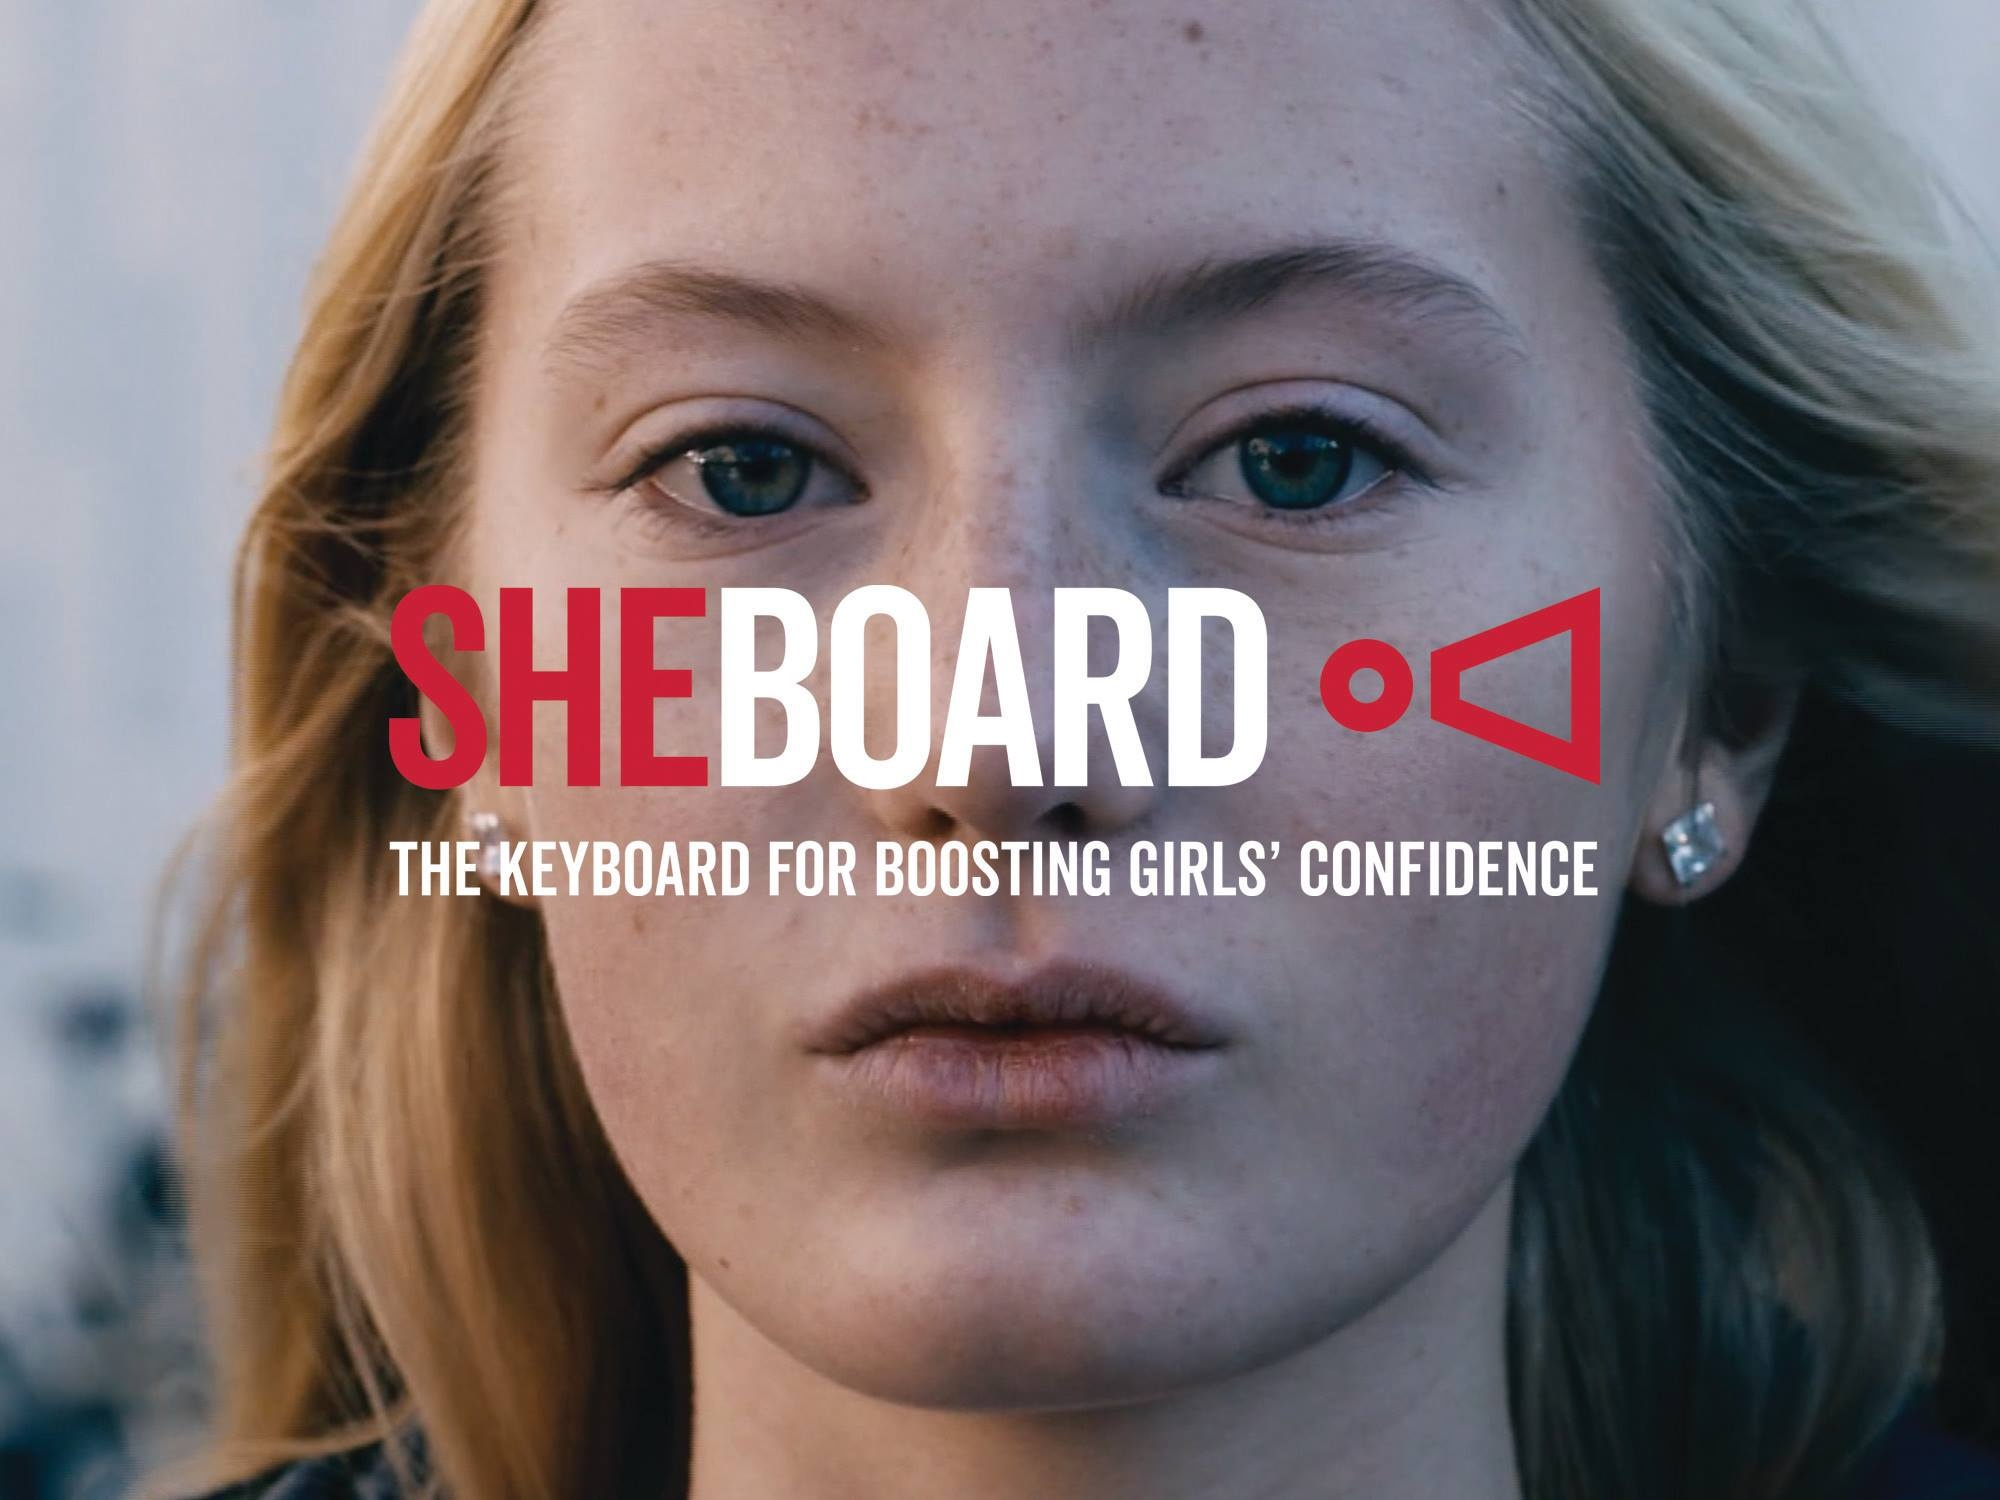 Thumbnail for Sheboard – Raised by words